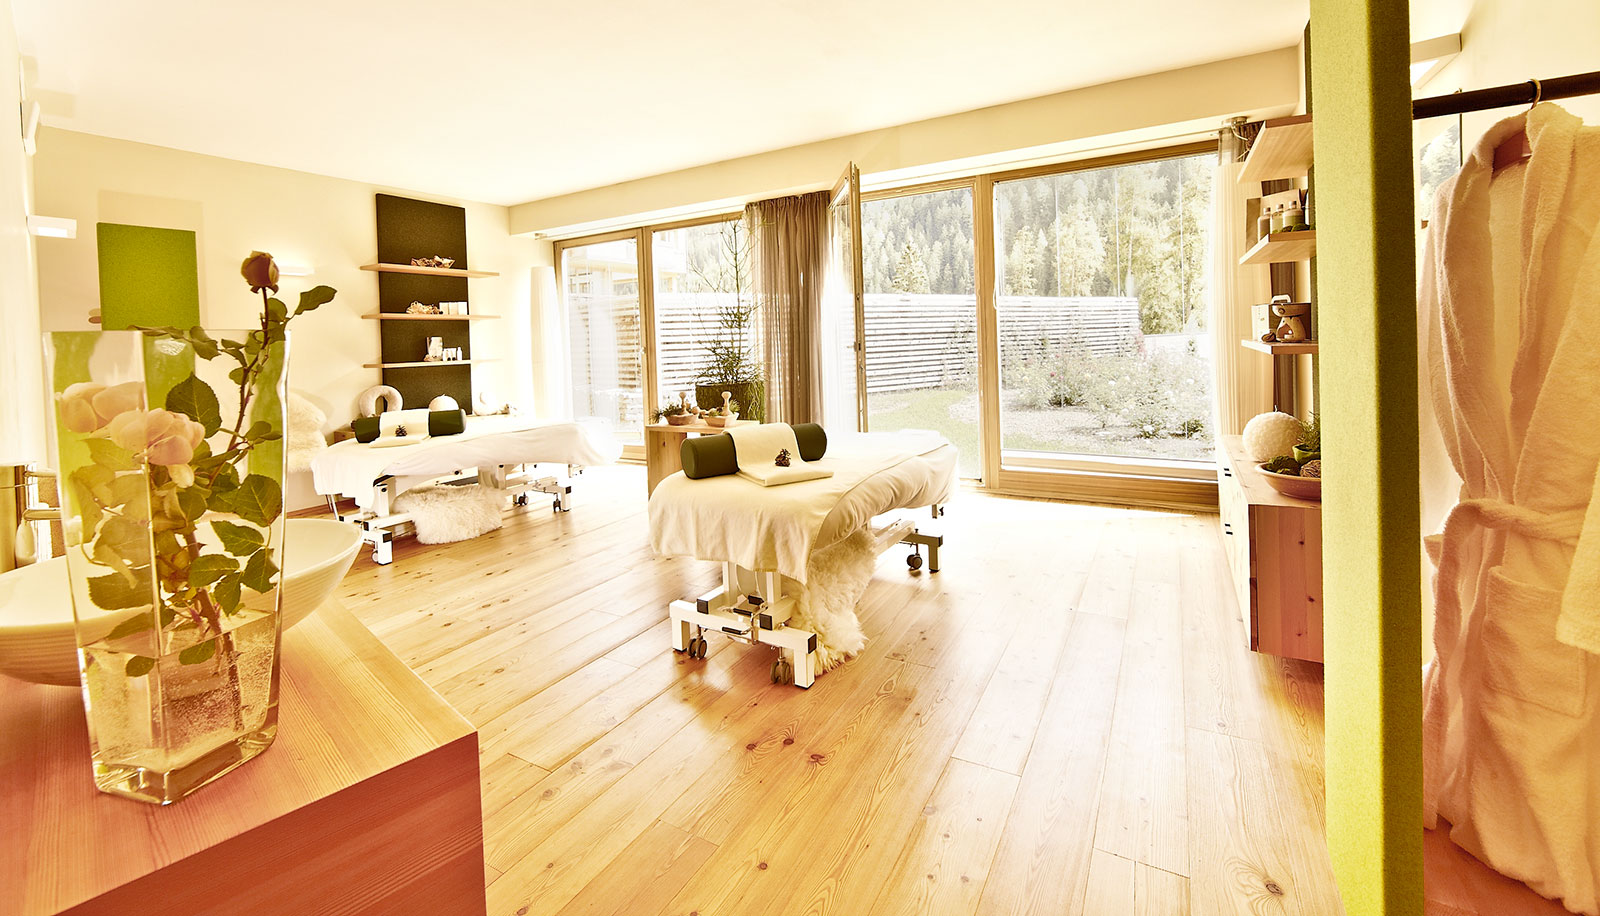 Treatment room of Arosea Hotel in Ultental-Val d'Ultimo with massage bed, wooden floor and view of the garden